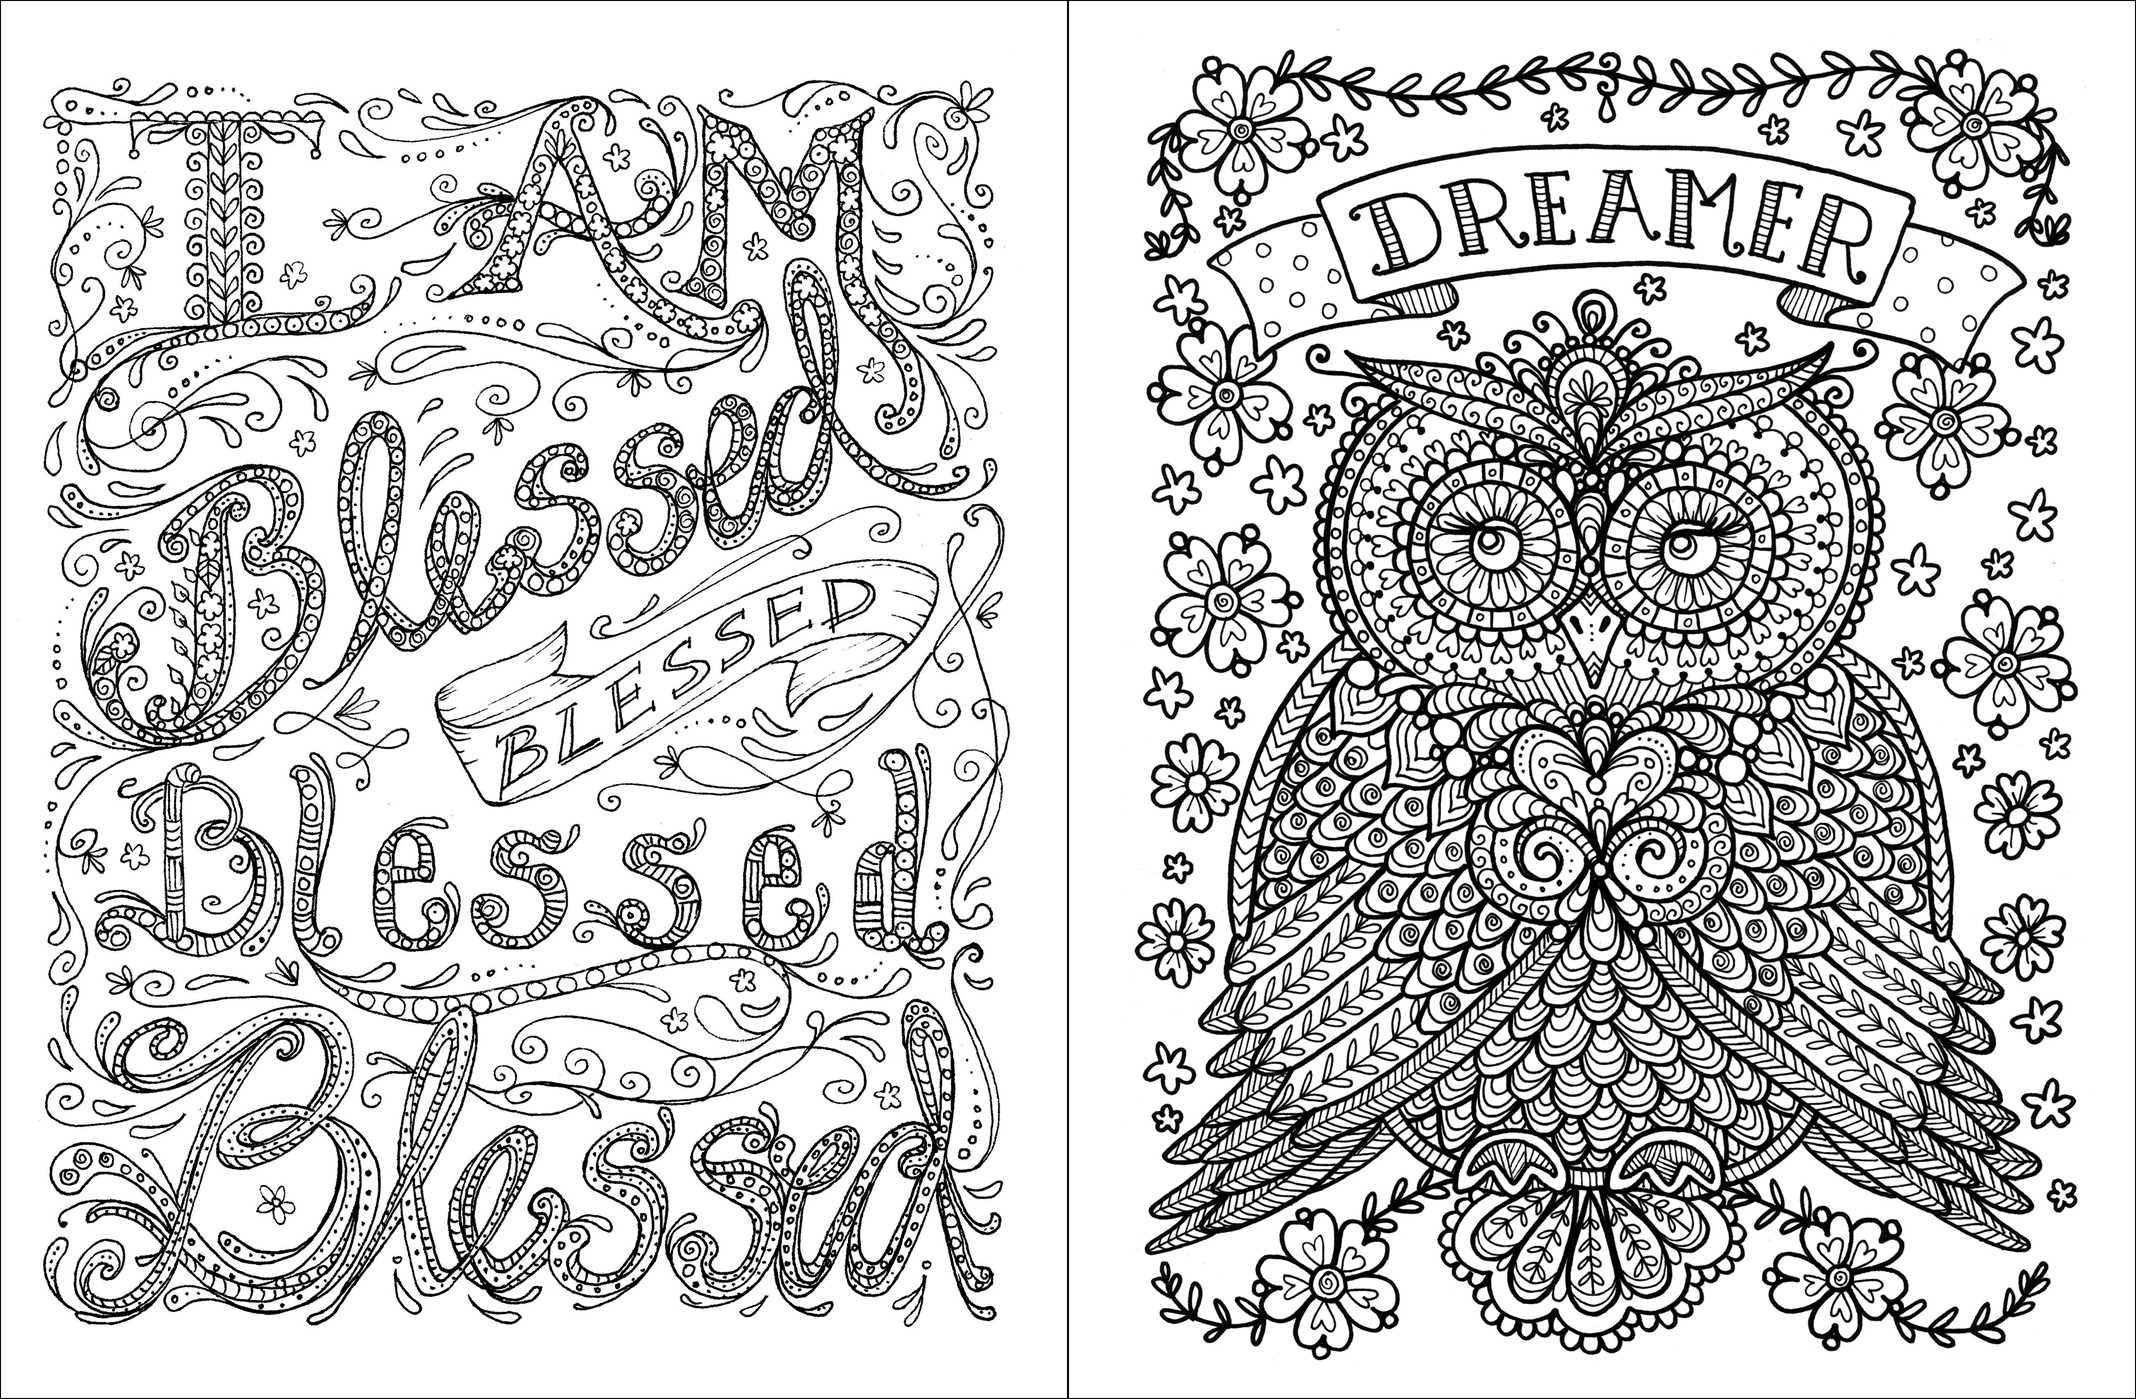 Free coloring pages for adults with quotes - Amazon Com Posh Adult Coloring Book Inspirational Quotes For Fun Relaxation Deborah Muller Posh Coloring Books 9781449474188 Deborah Muller Books